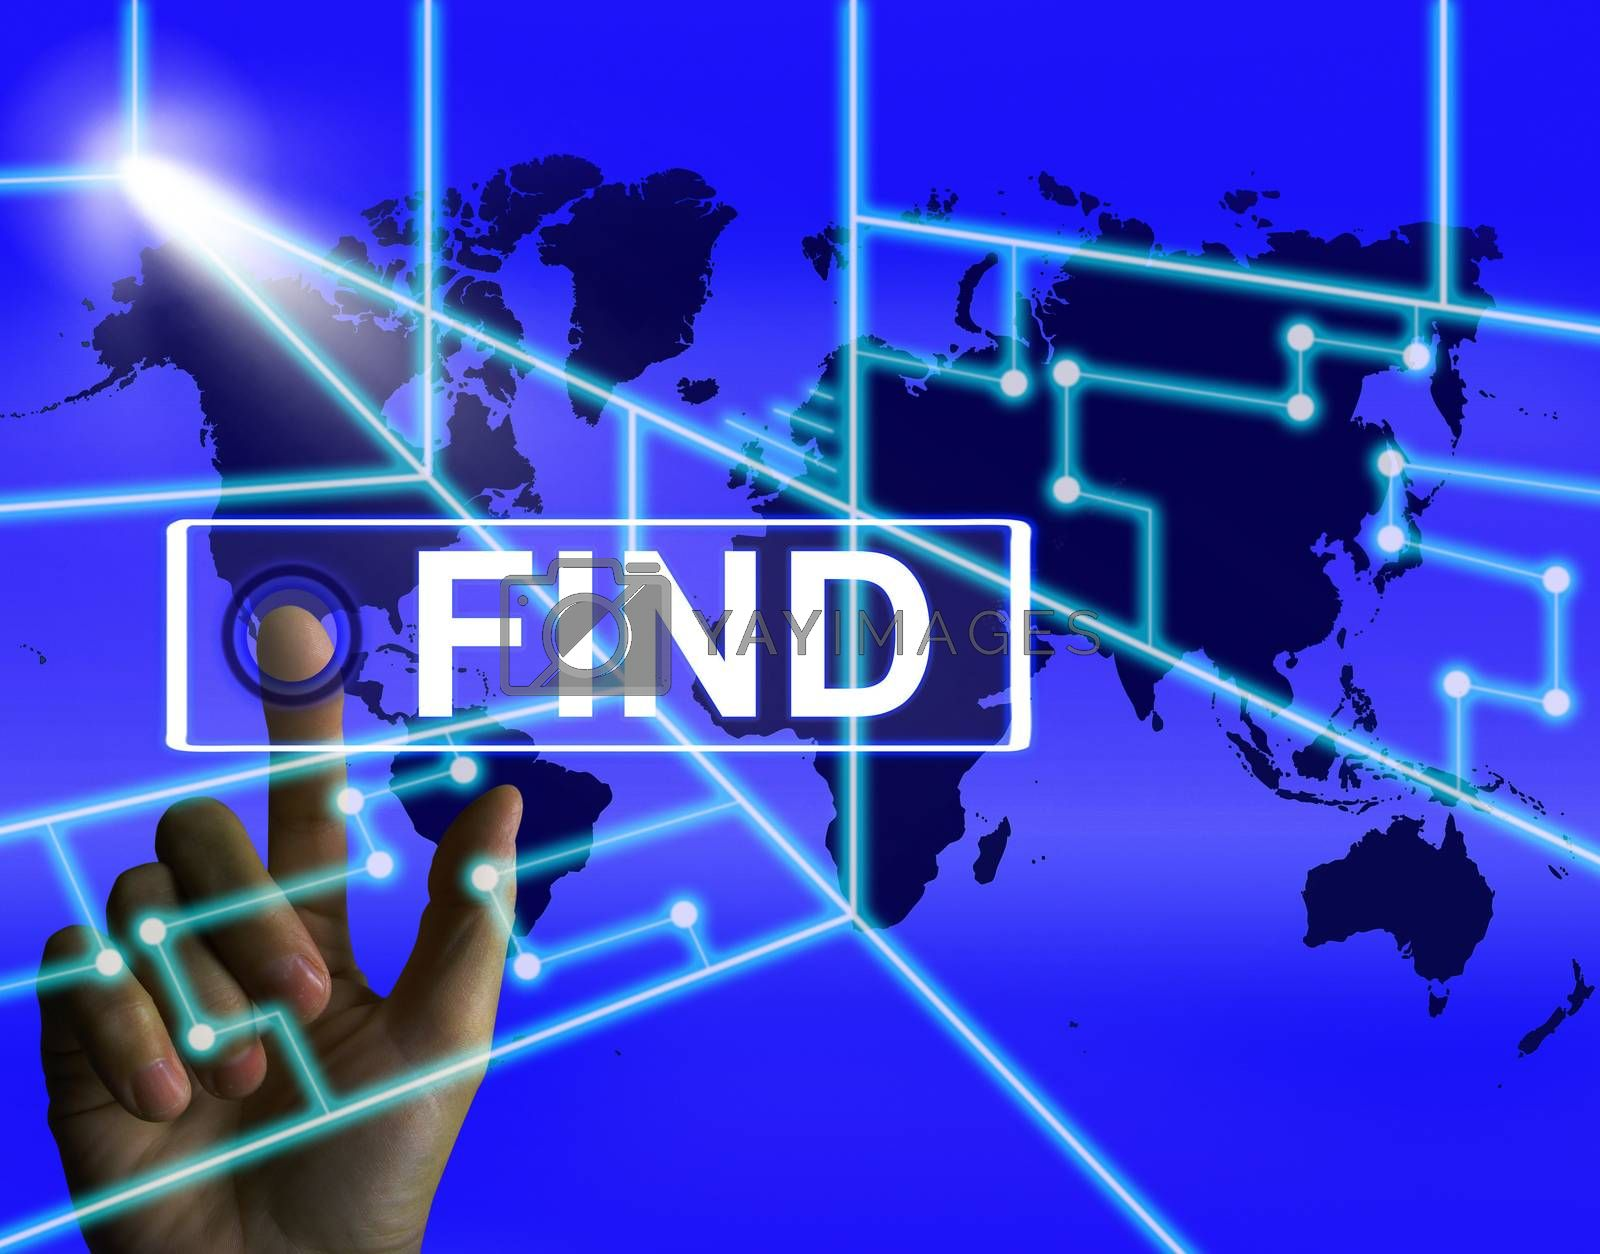 Find Screen Indicates Internet or Online Discovery or Hunt by stuartmiles